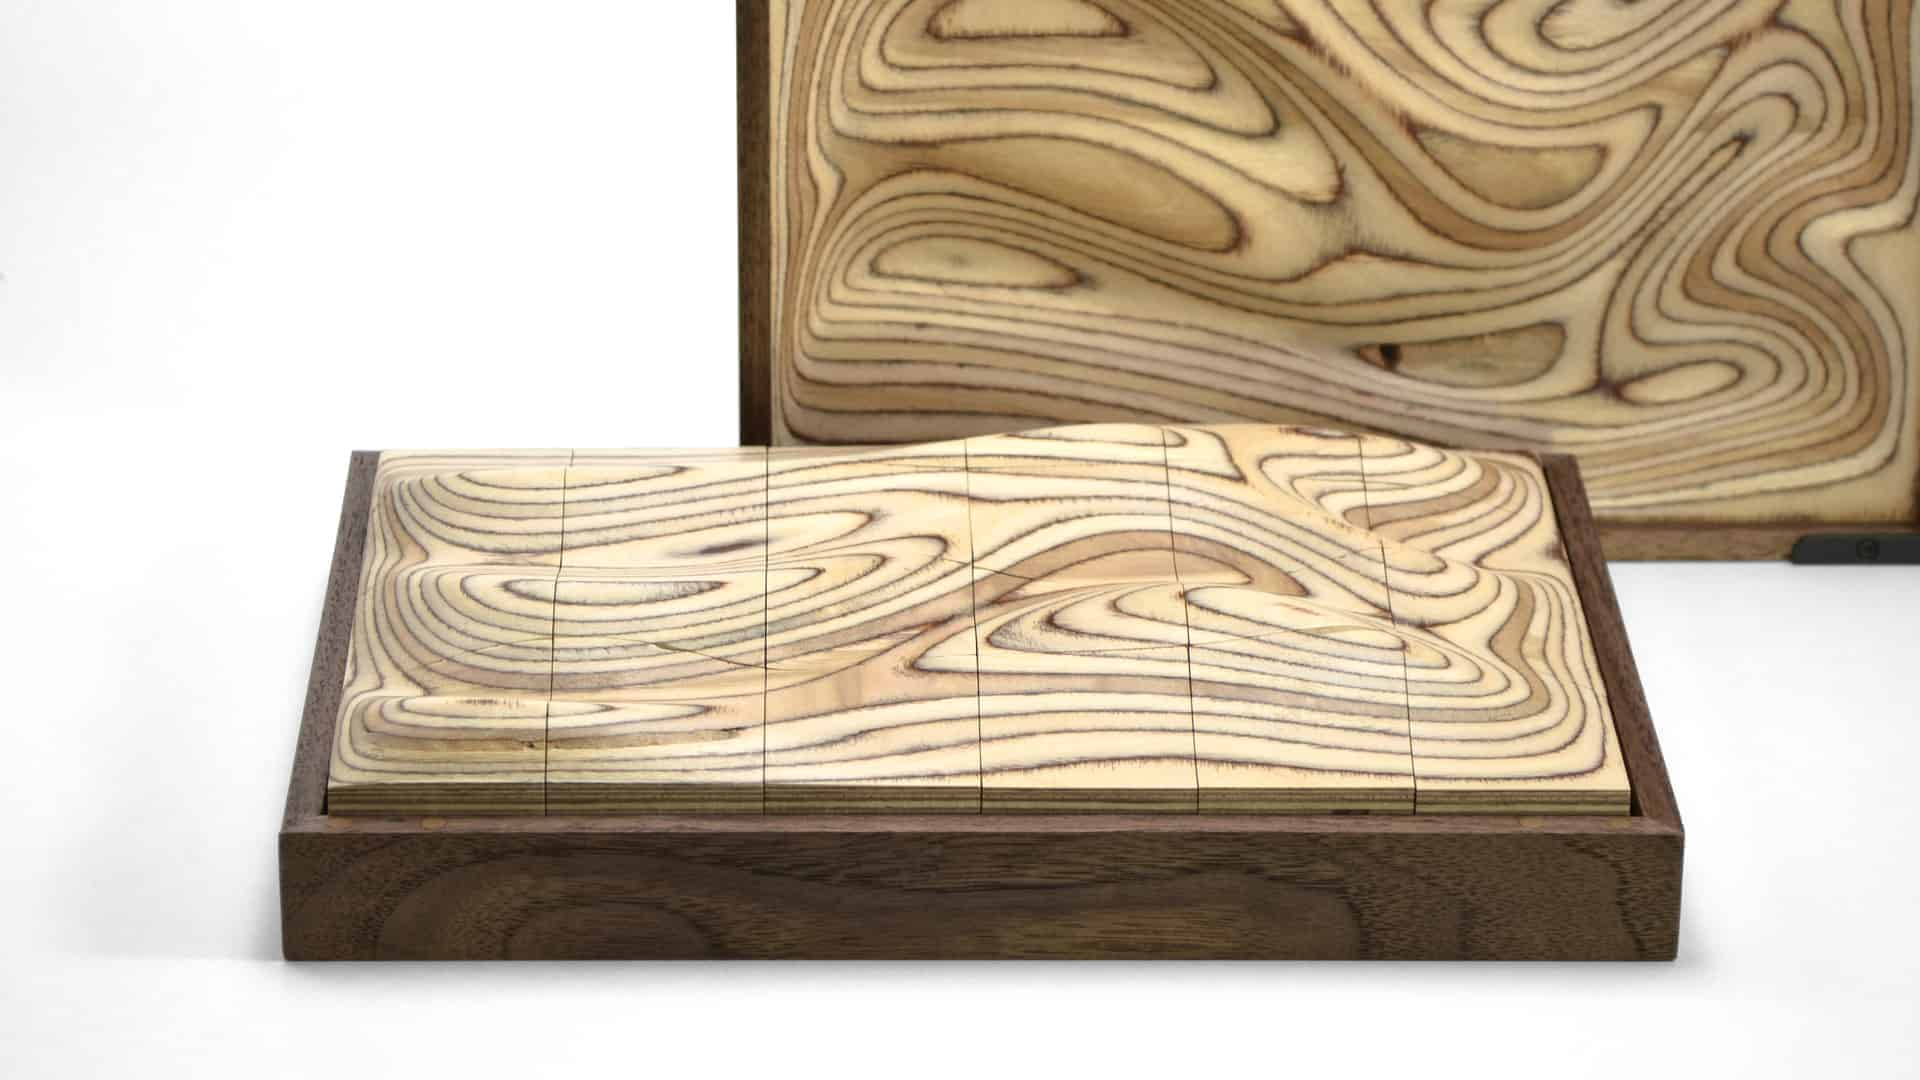 Strata | A sculptural wooden surface puzzle